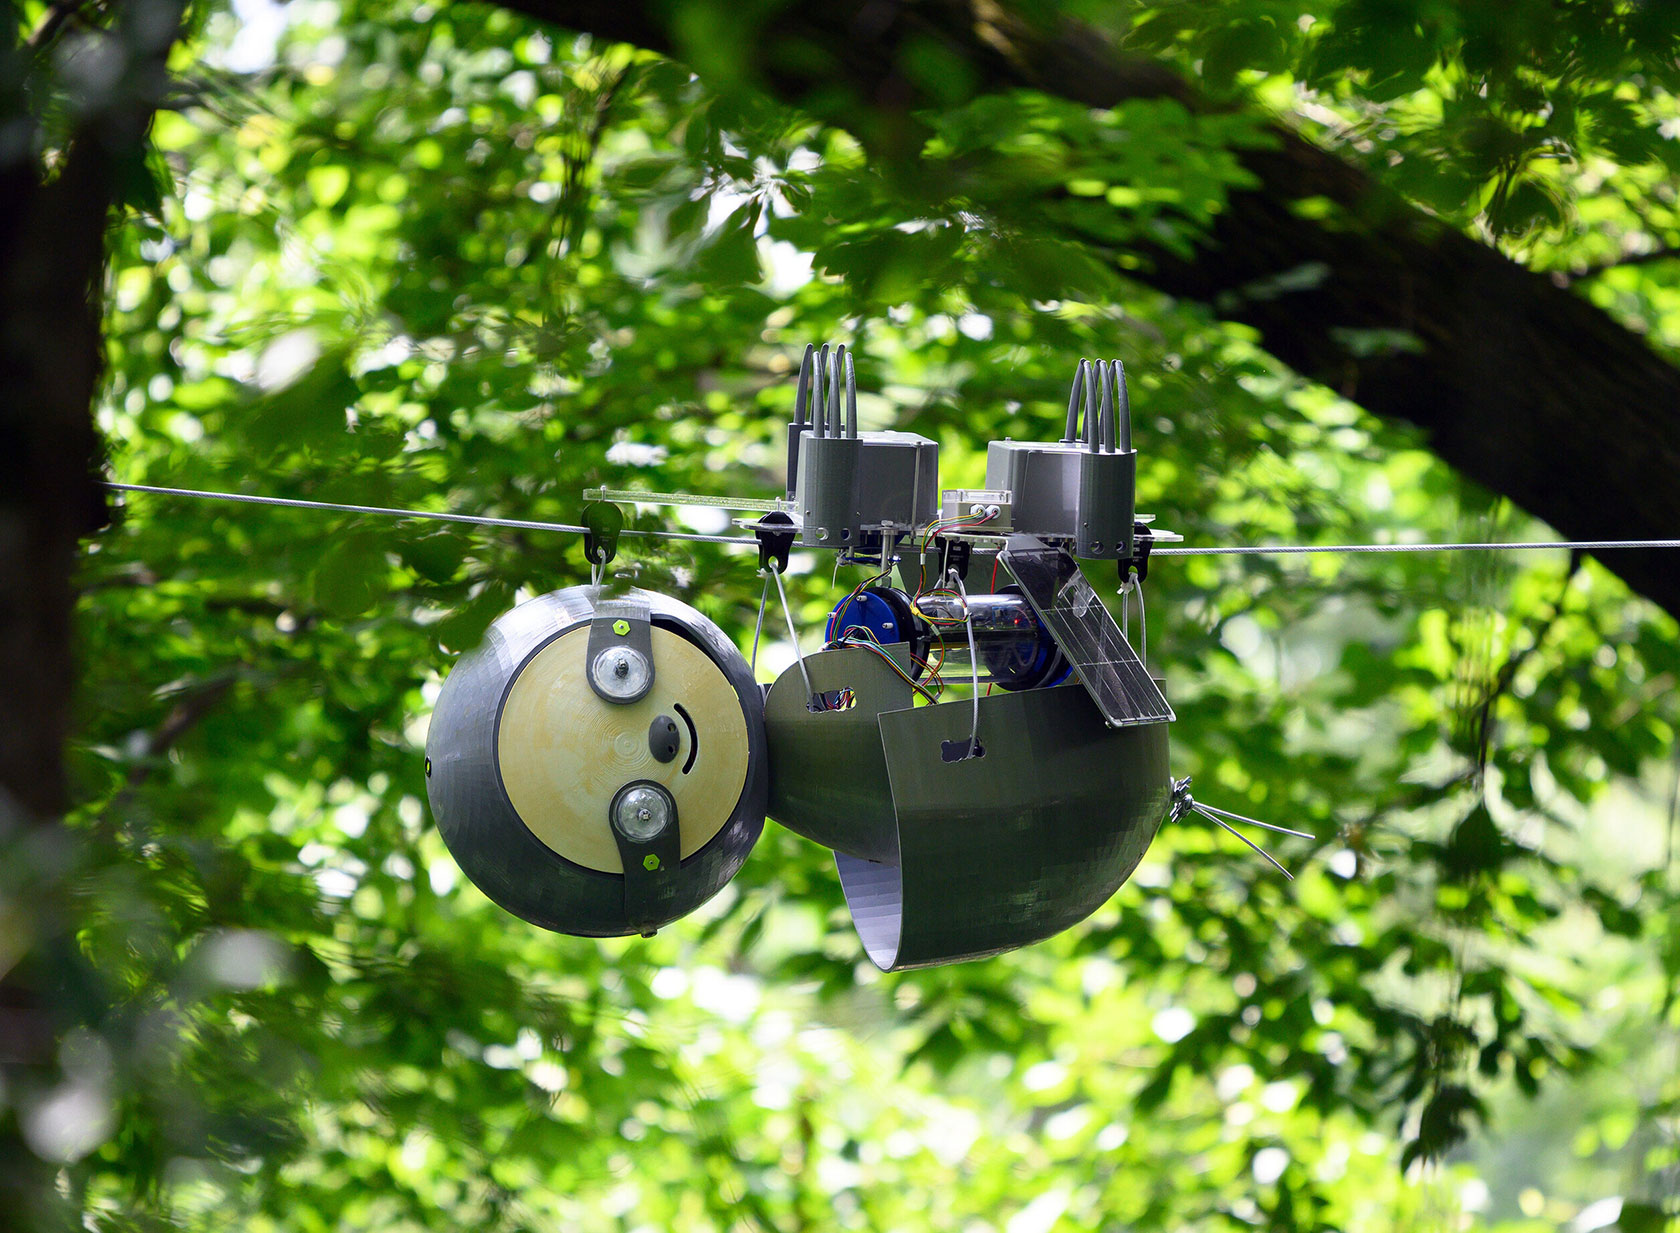 Georgia Tech SlothBot Robotic Sloth